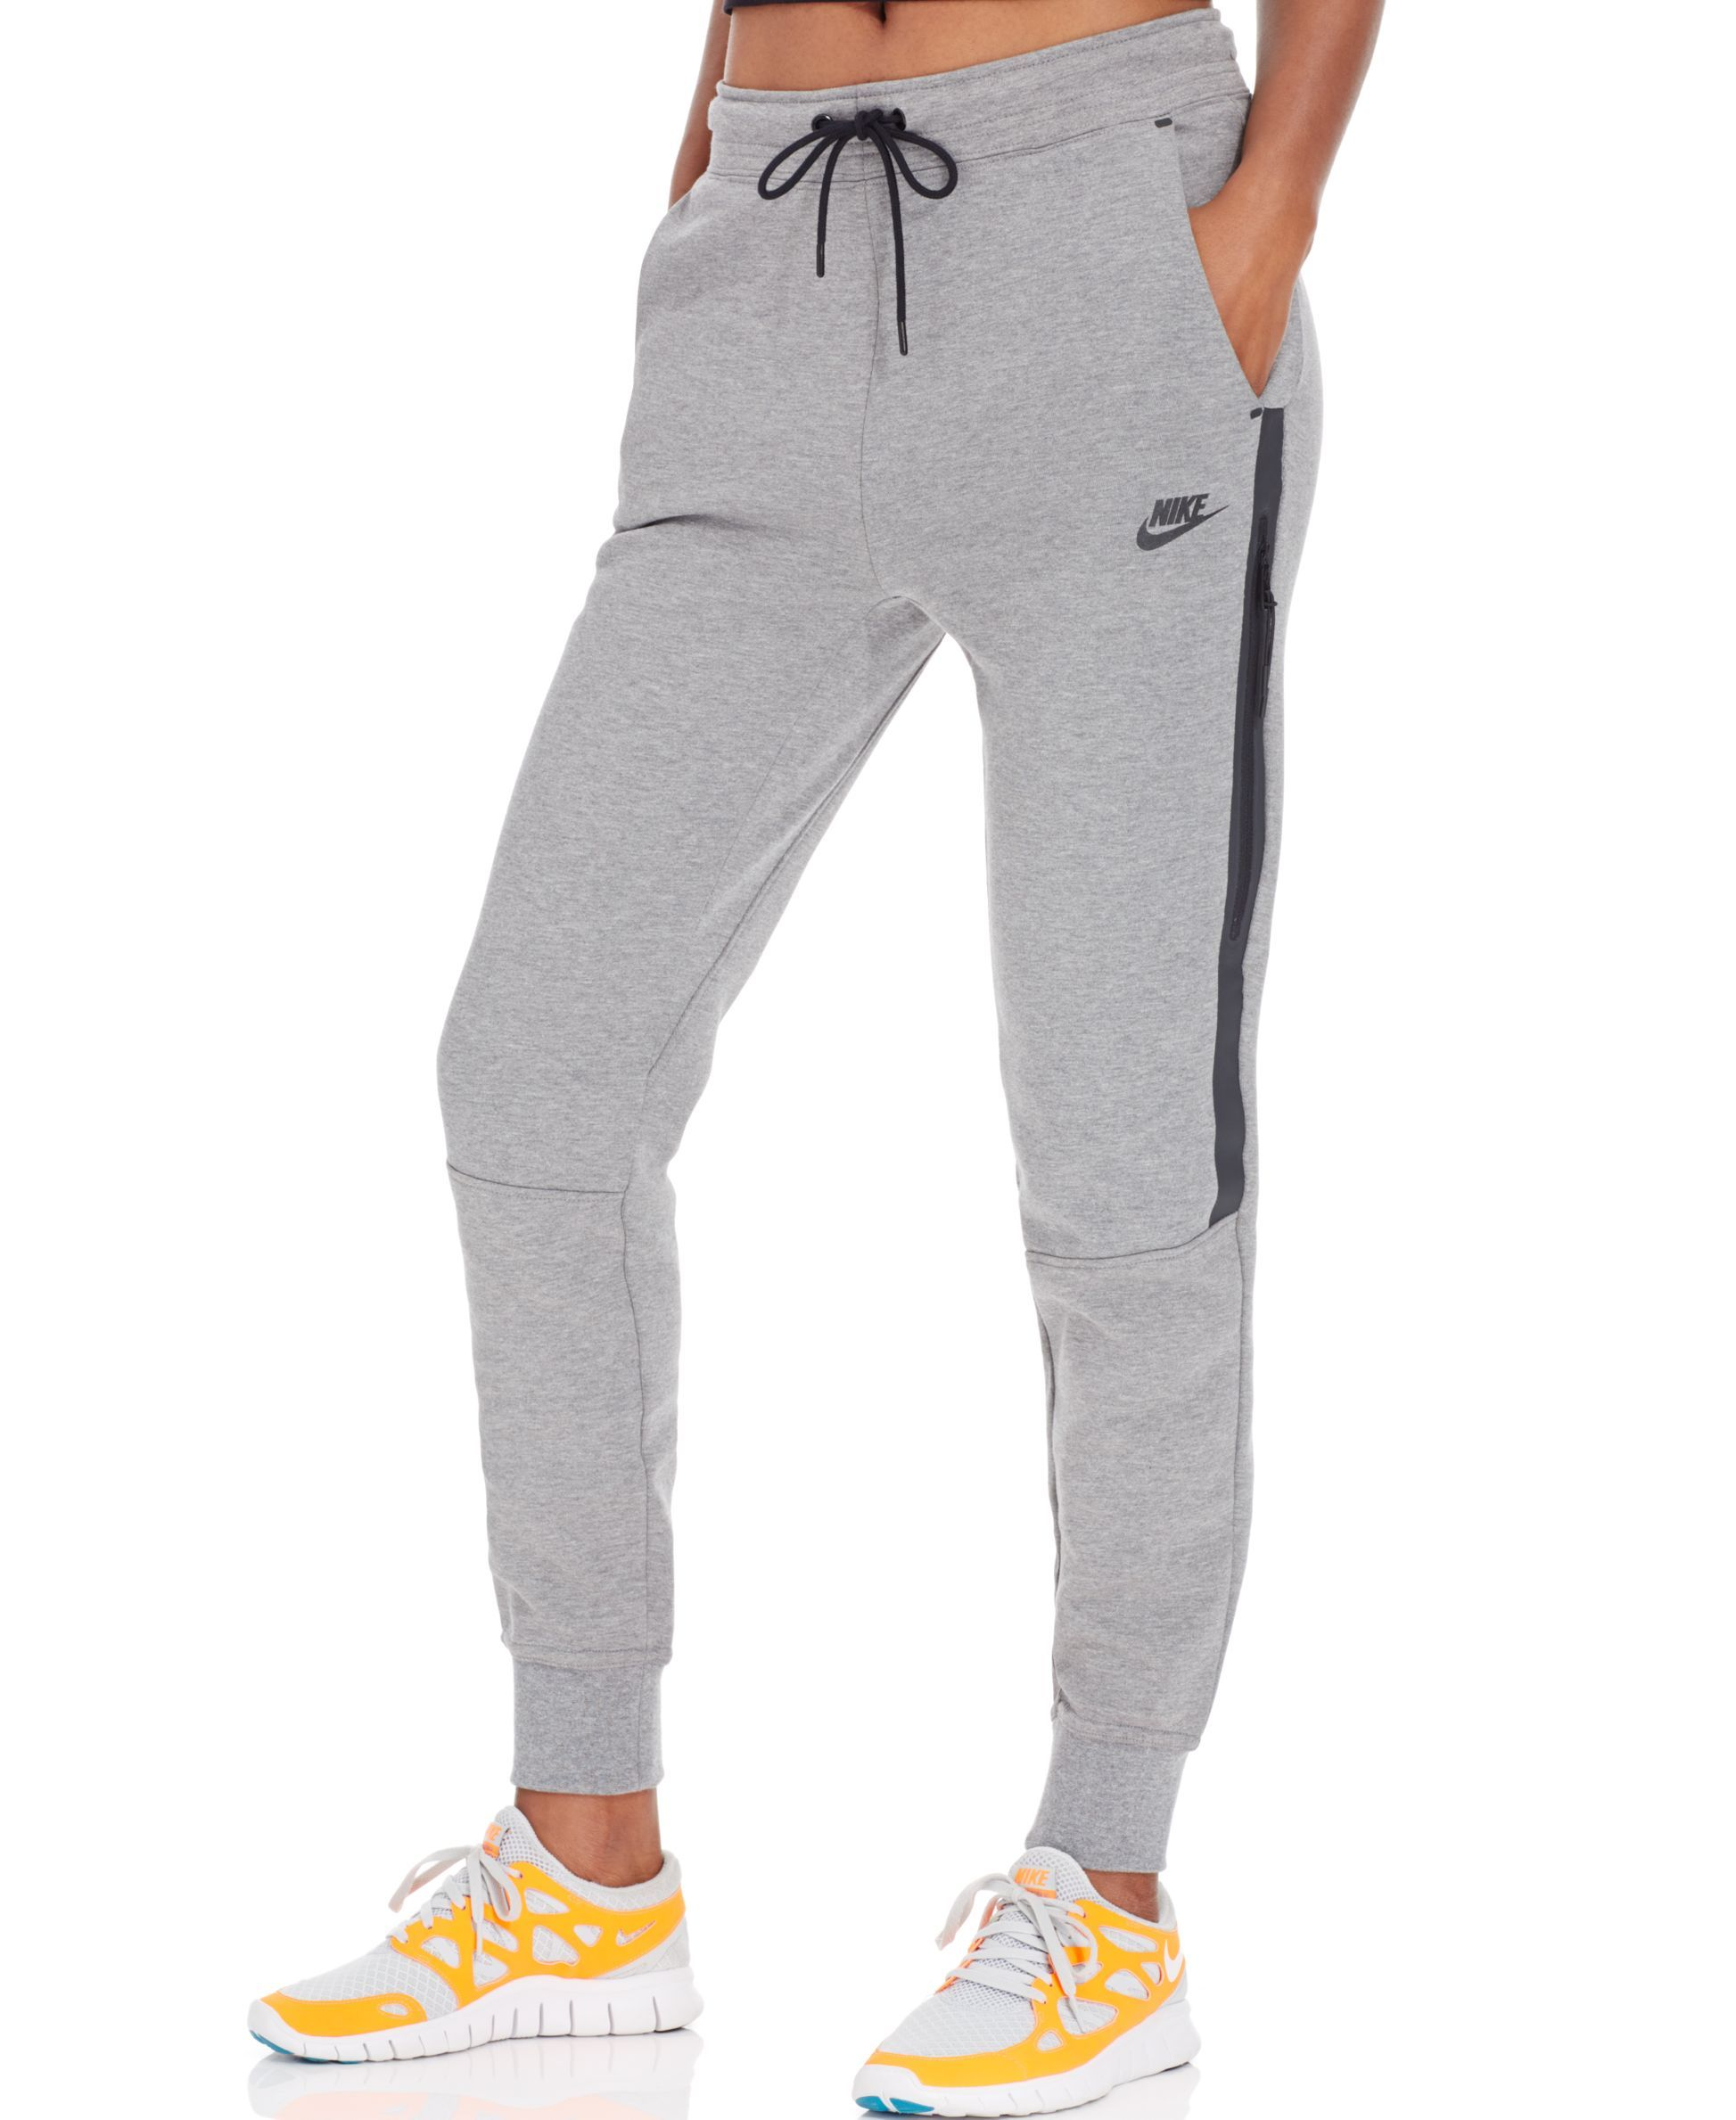 Nike Tech Fleece Sweatpants - Pants - Women - Macy's Pantalones De Chándal 7f0606eff503